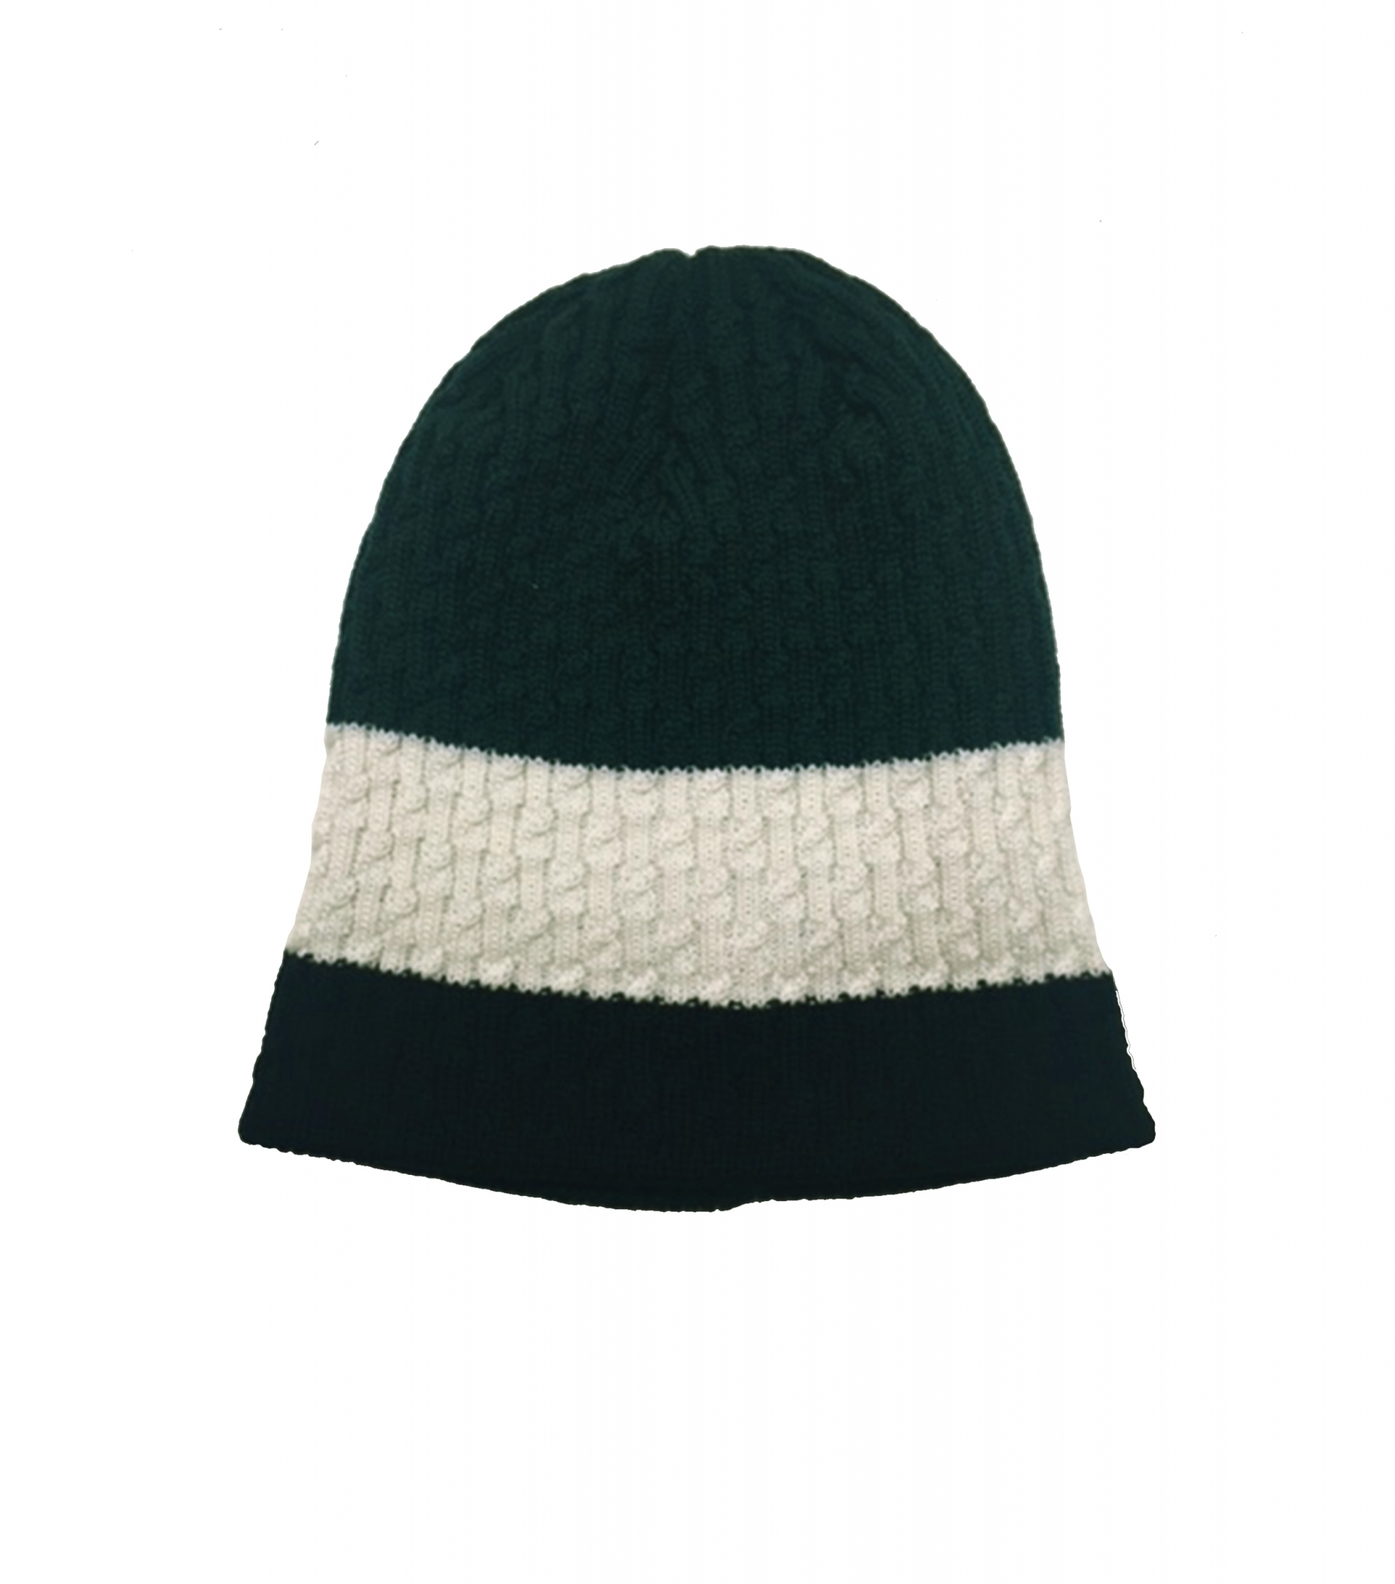 HAT FRAME - Dark green